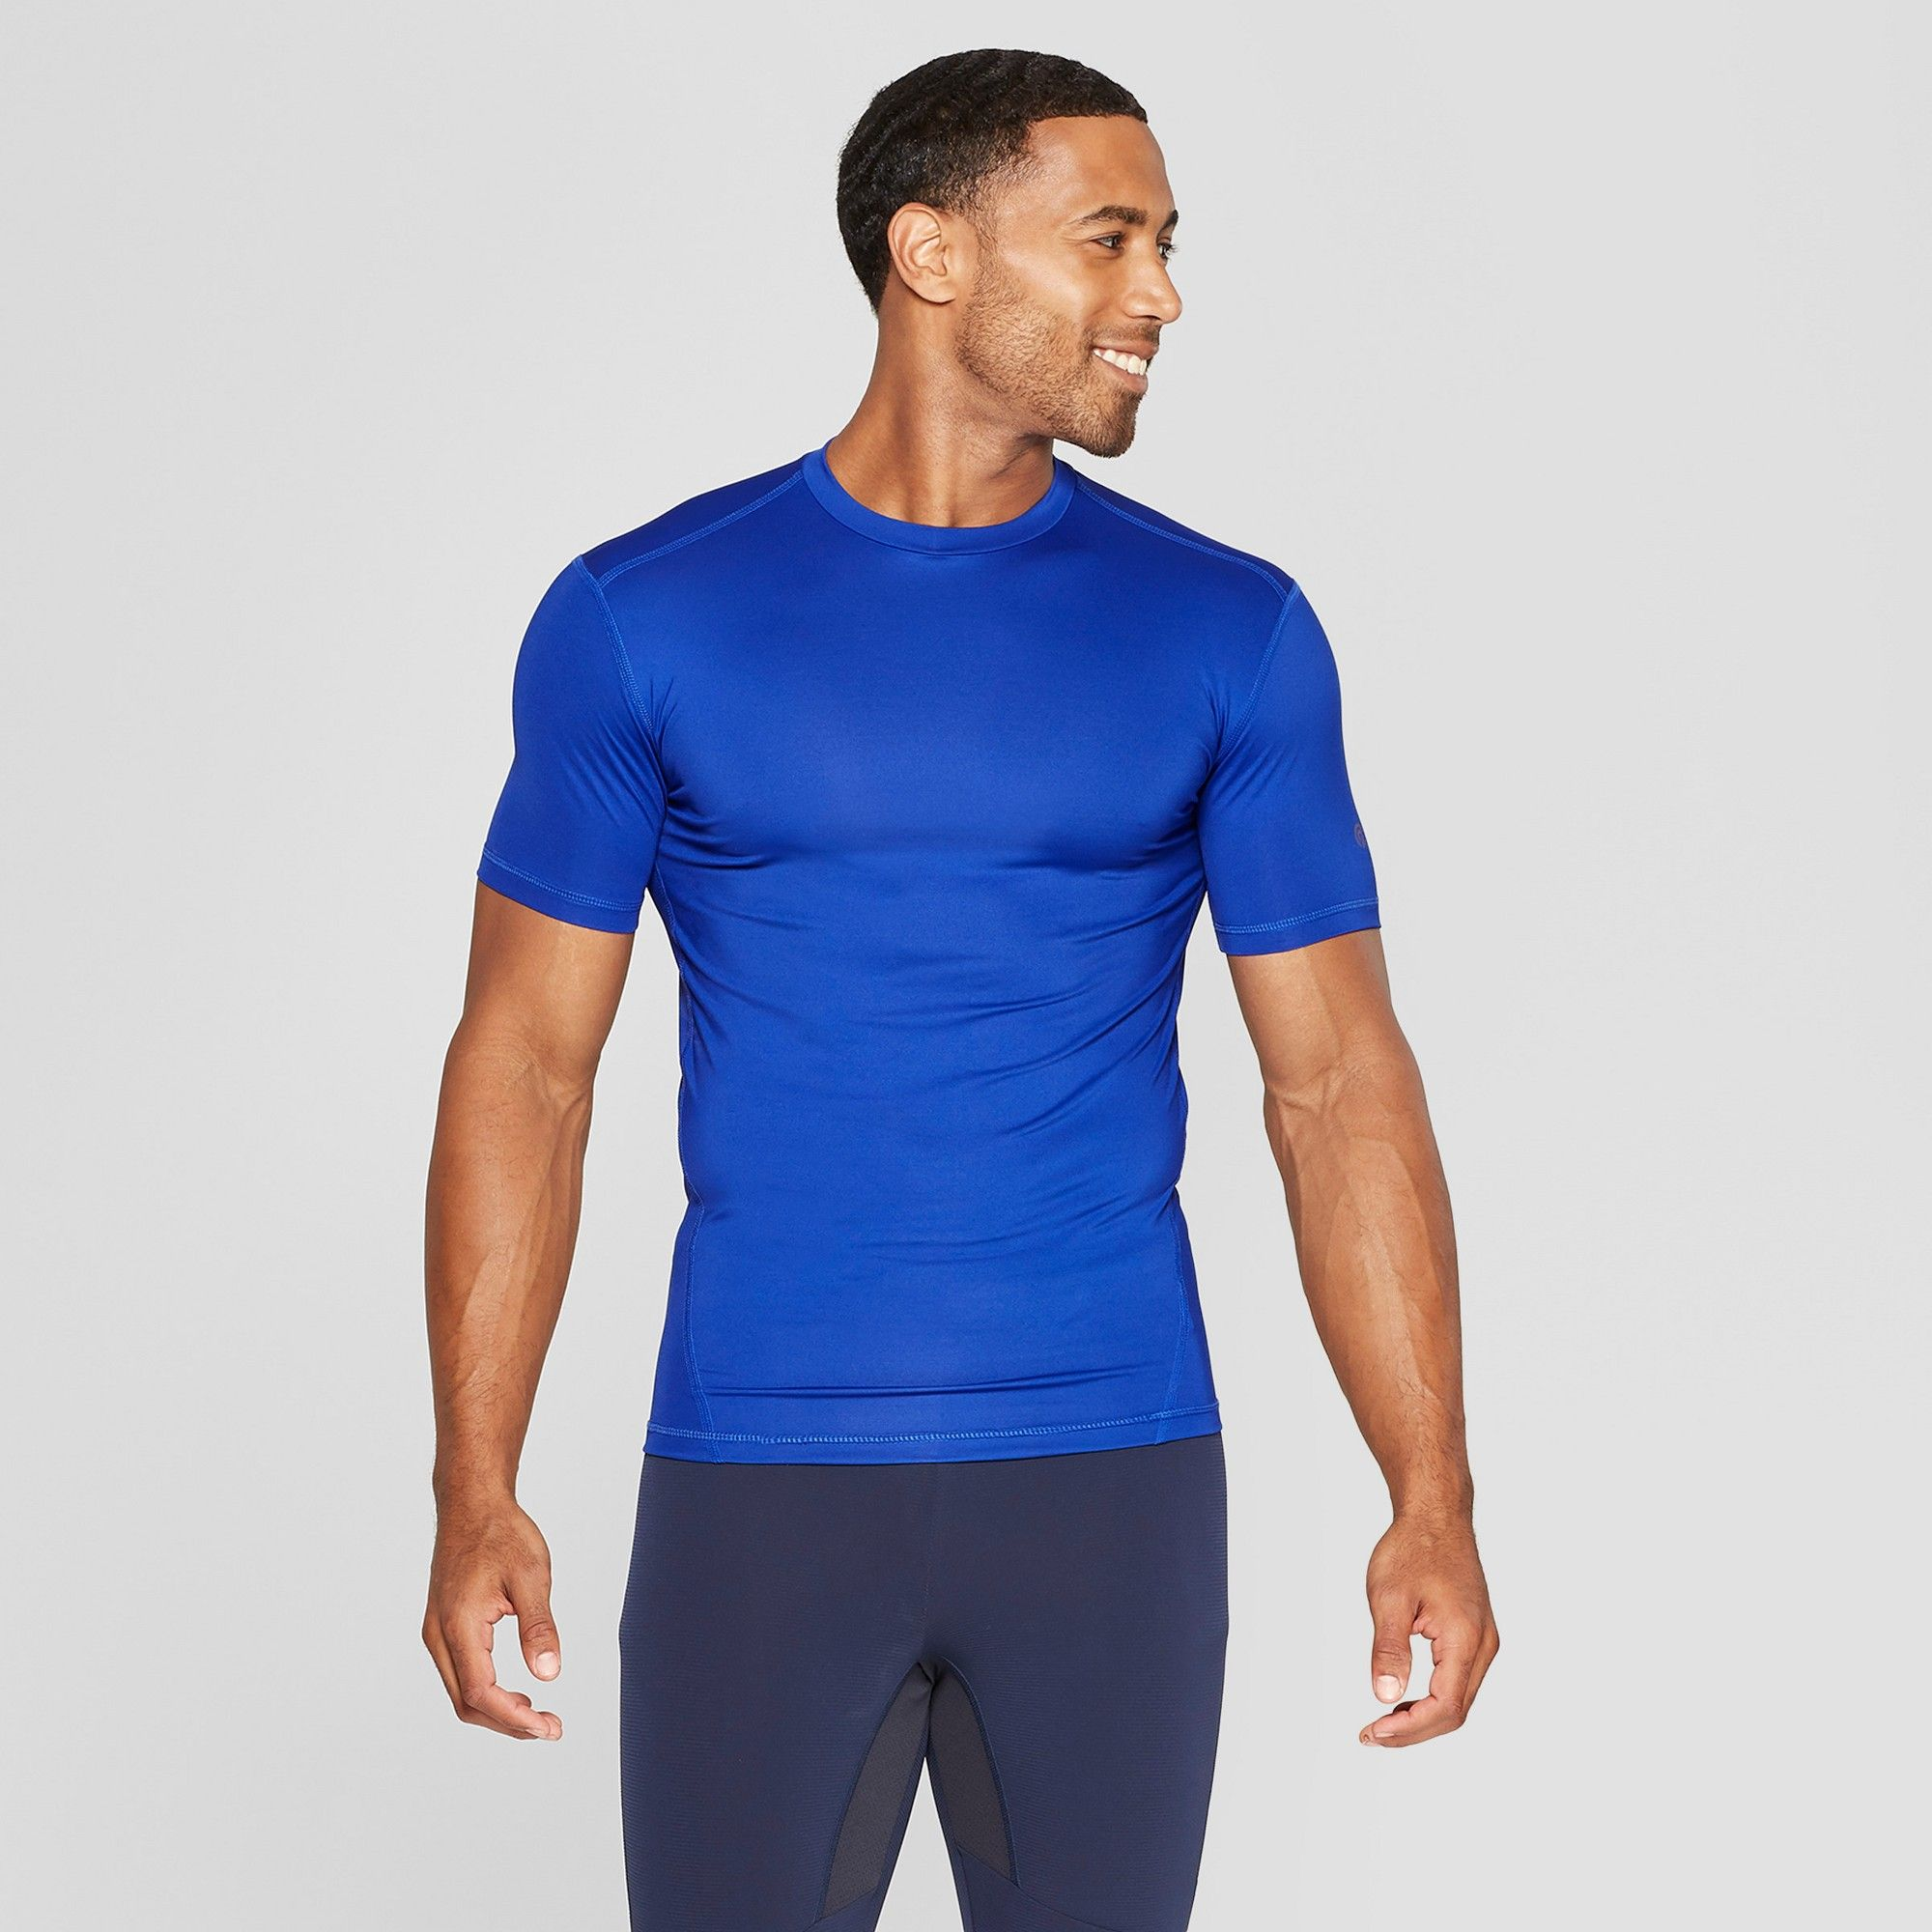 Men s Fitted Short Sleeve Compression T-Shirt - C9 Champion Omni Blue L c2738187d